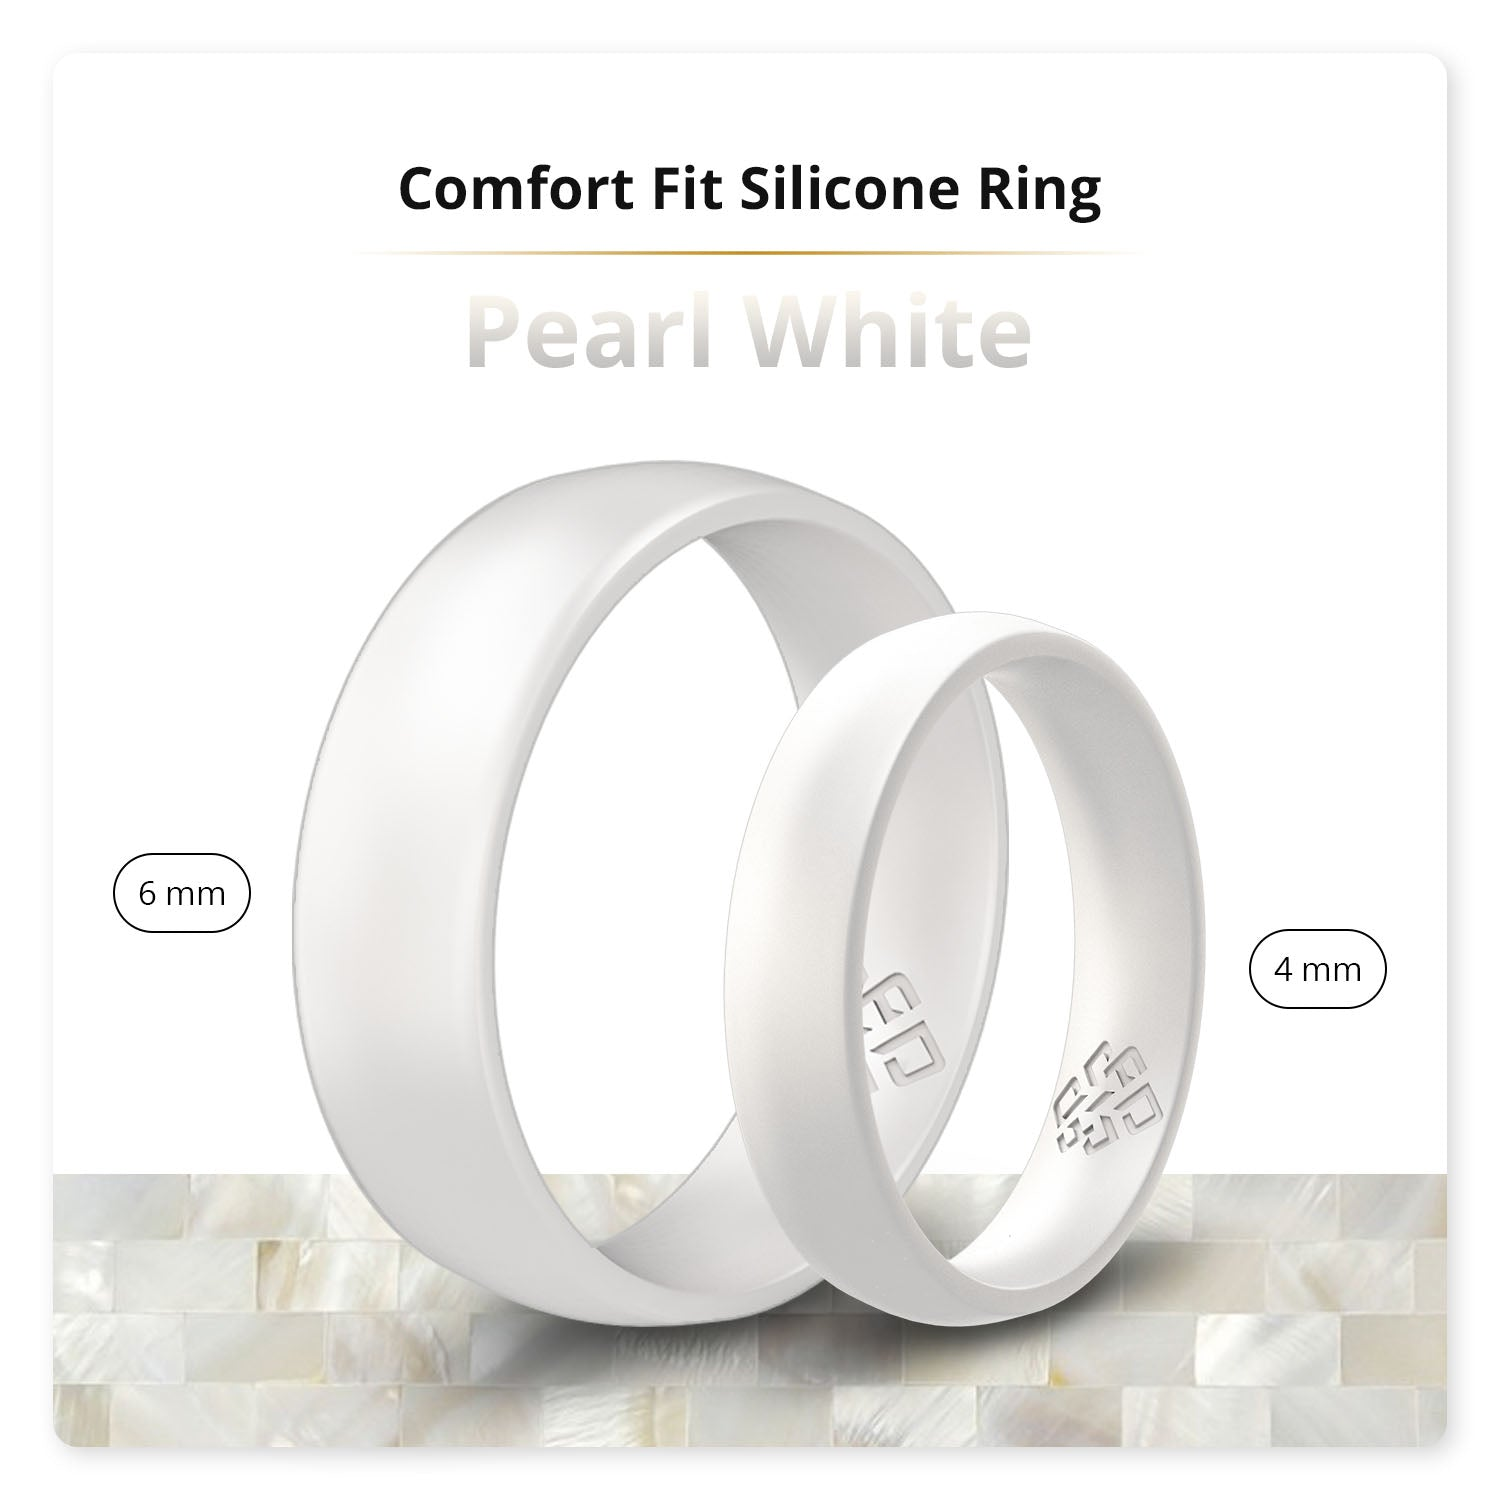 Pearl White Domed Comfort Fit Silicone Ring Man Woman